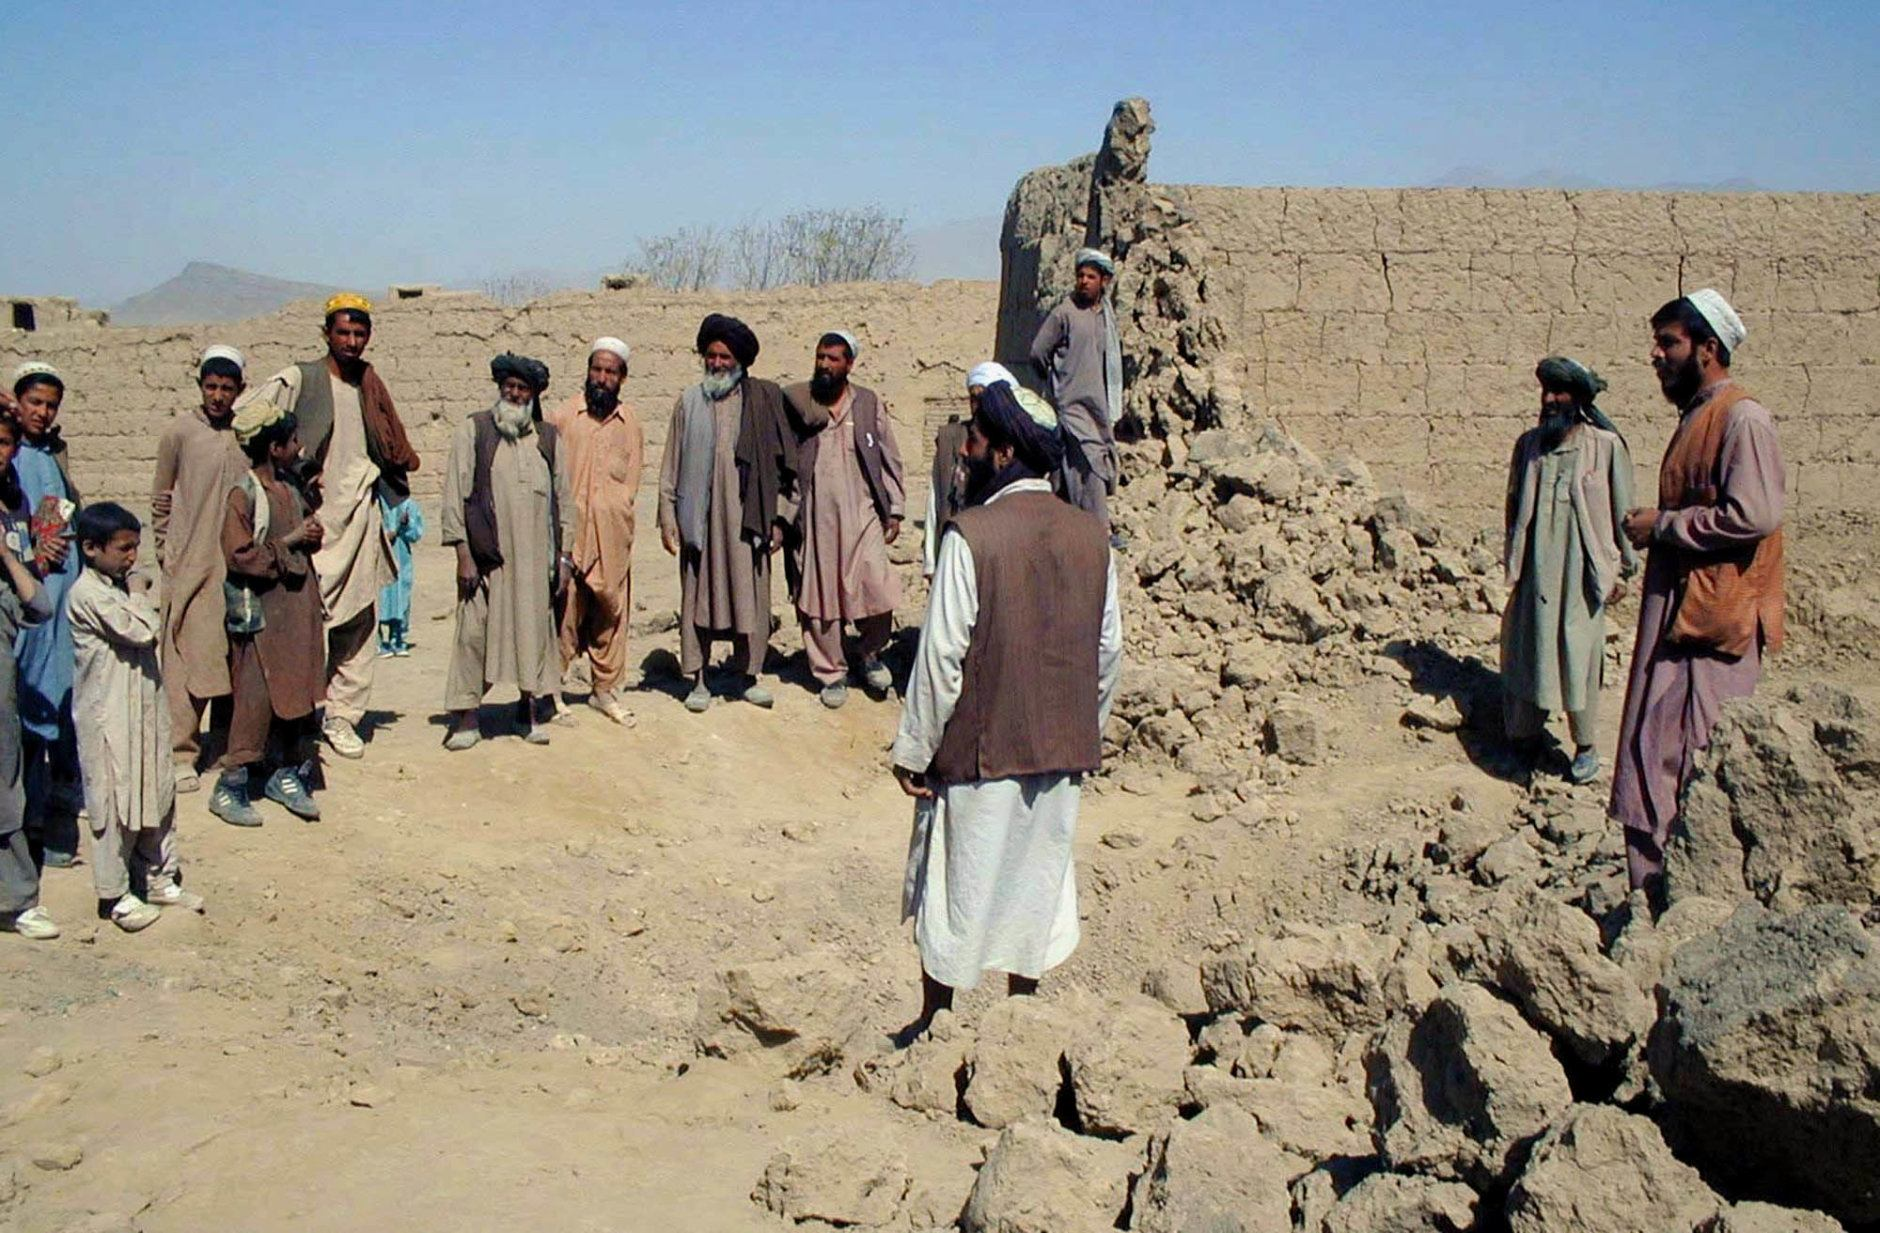 Residents look at the damage caused in a wall by a U.S. air strike in the village of Deh Sabz, 20 kilometers (13 miles) north of the Afghan capital Kabul Wednesday, Oct. 10, 2001. Warplanes pounded also  the Taliban's home base of Kandahar early Wednesday for the third time in 24 hours, targeting the airport outside the southern Afghan city (AP Photo/Amir Shah)